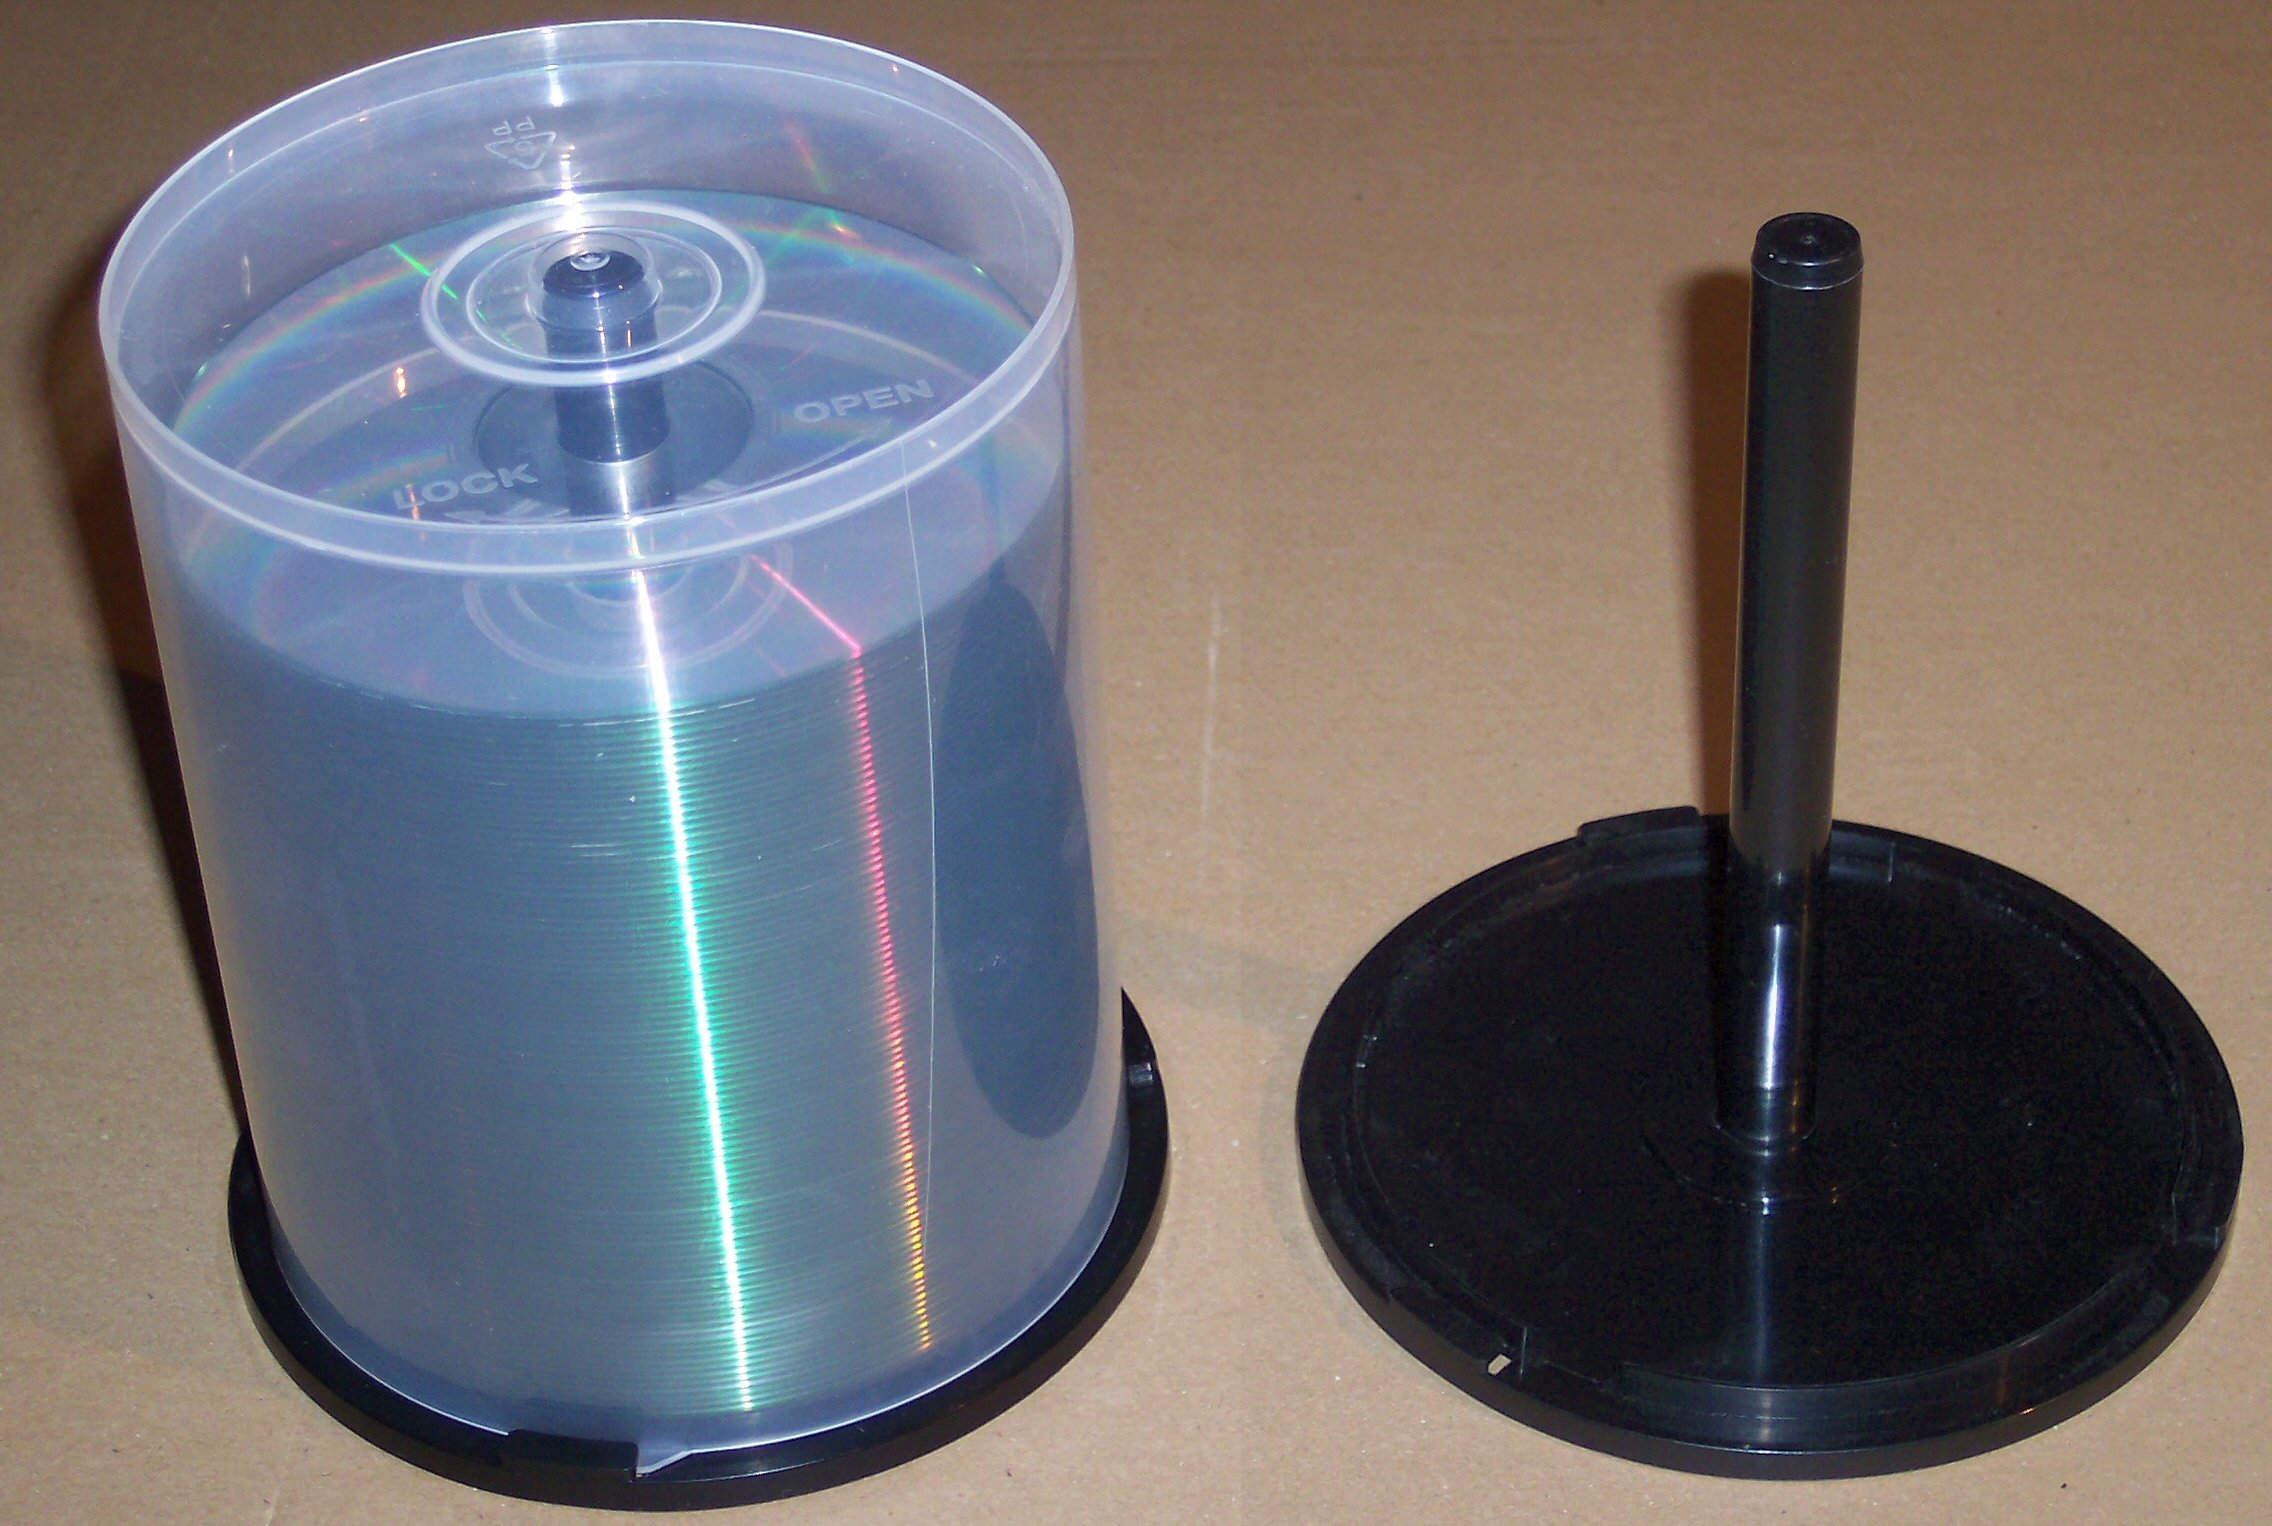 Tiffin box made out of CDs